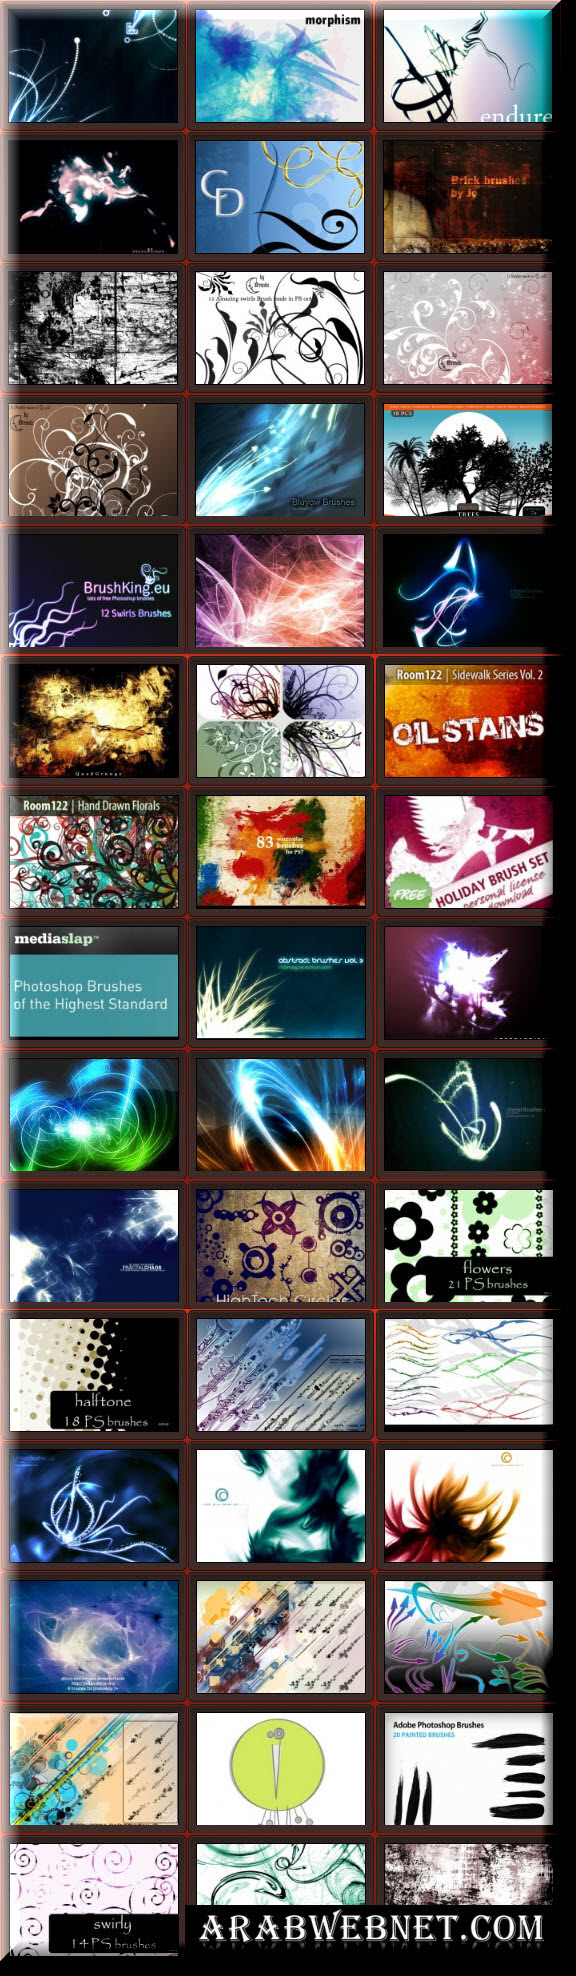 Photoshop Brushes Biggest Collection 4388.jpg